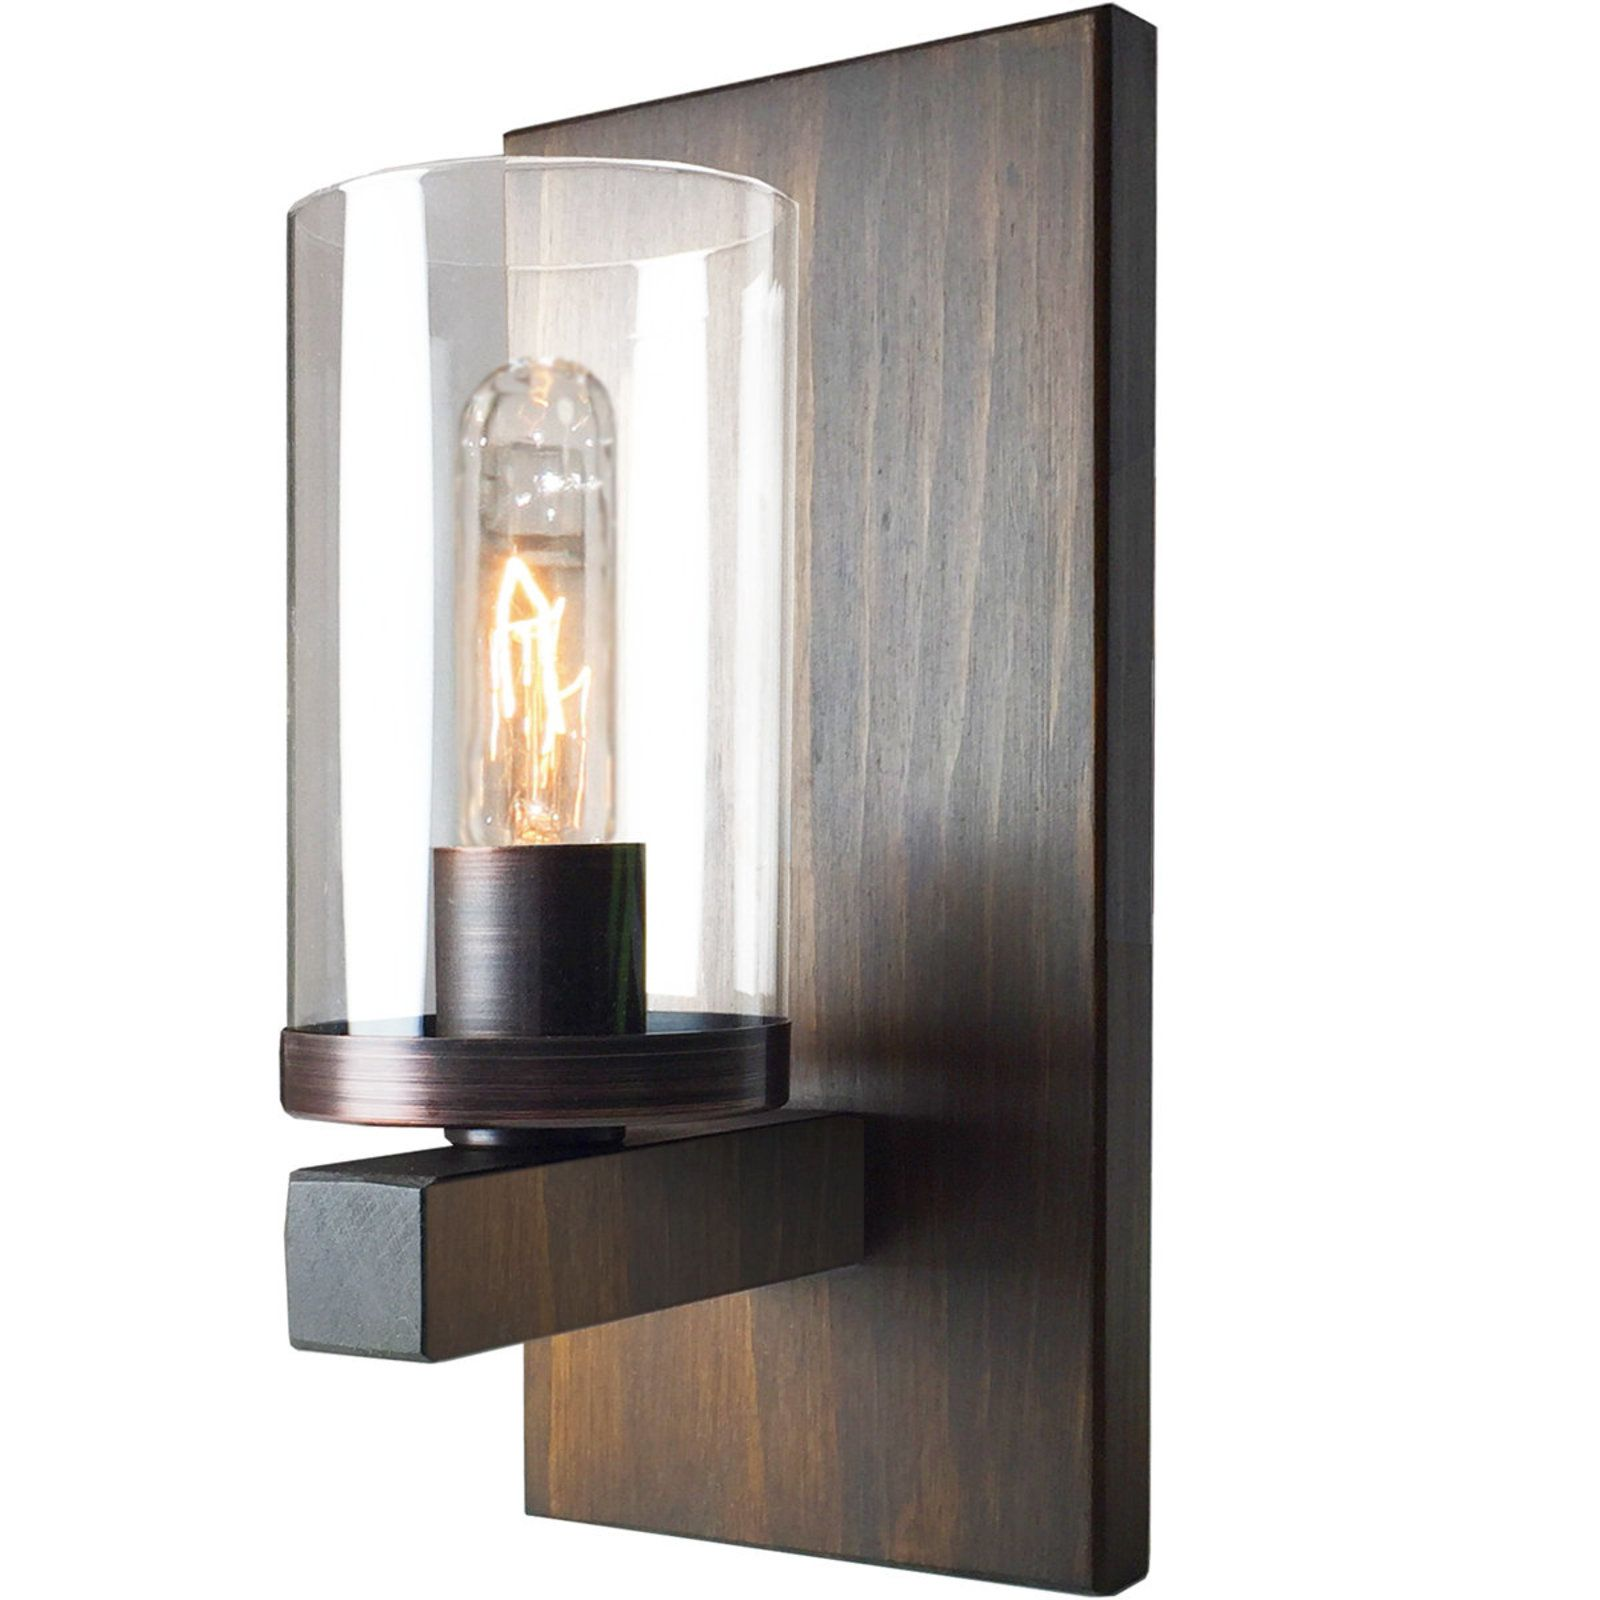 Medieval Modern Wall Sconce Bronze Sconces Modern Wall Sconces Bedside Wall Sconce